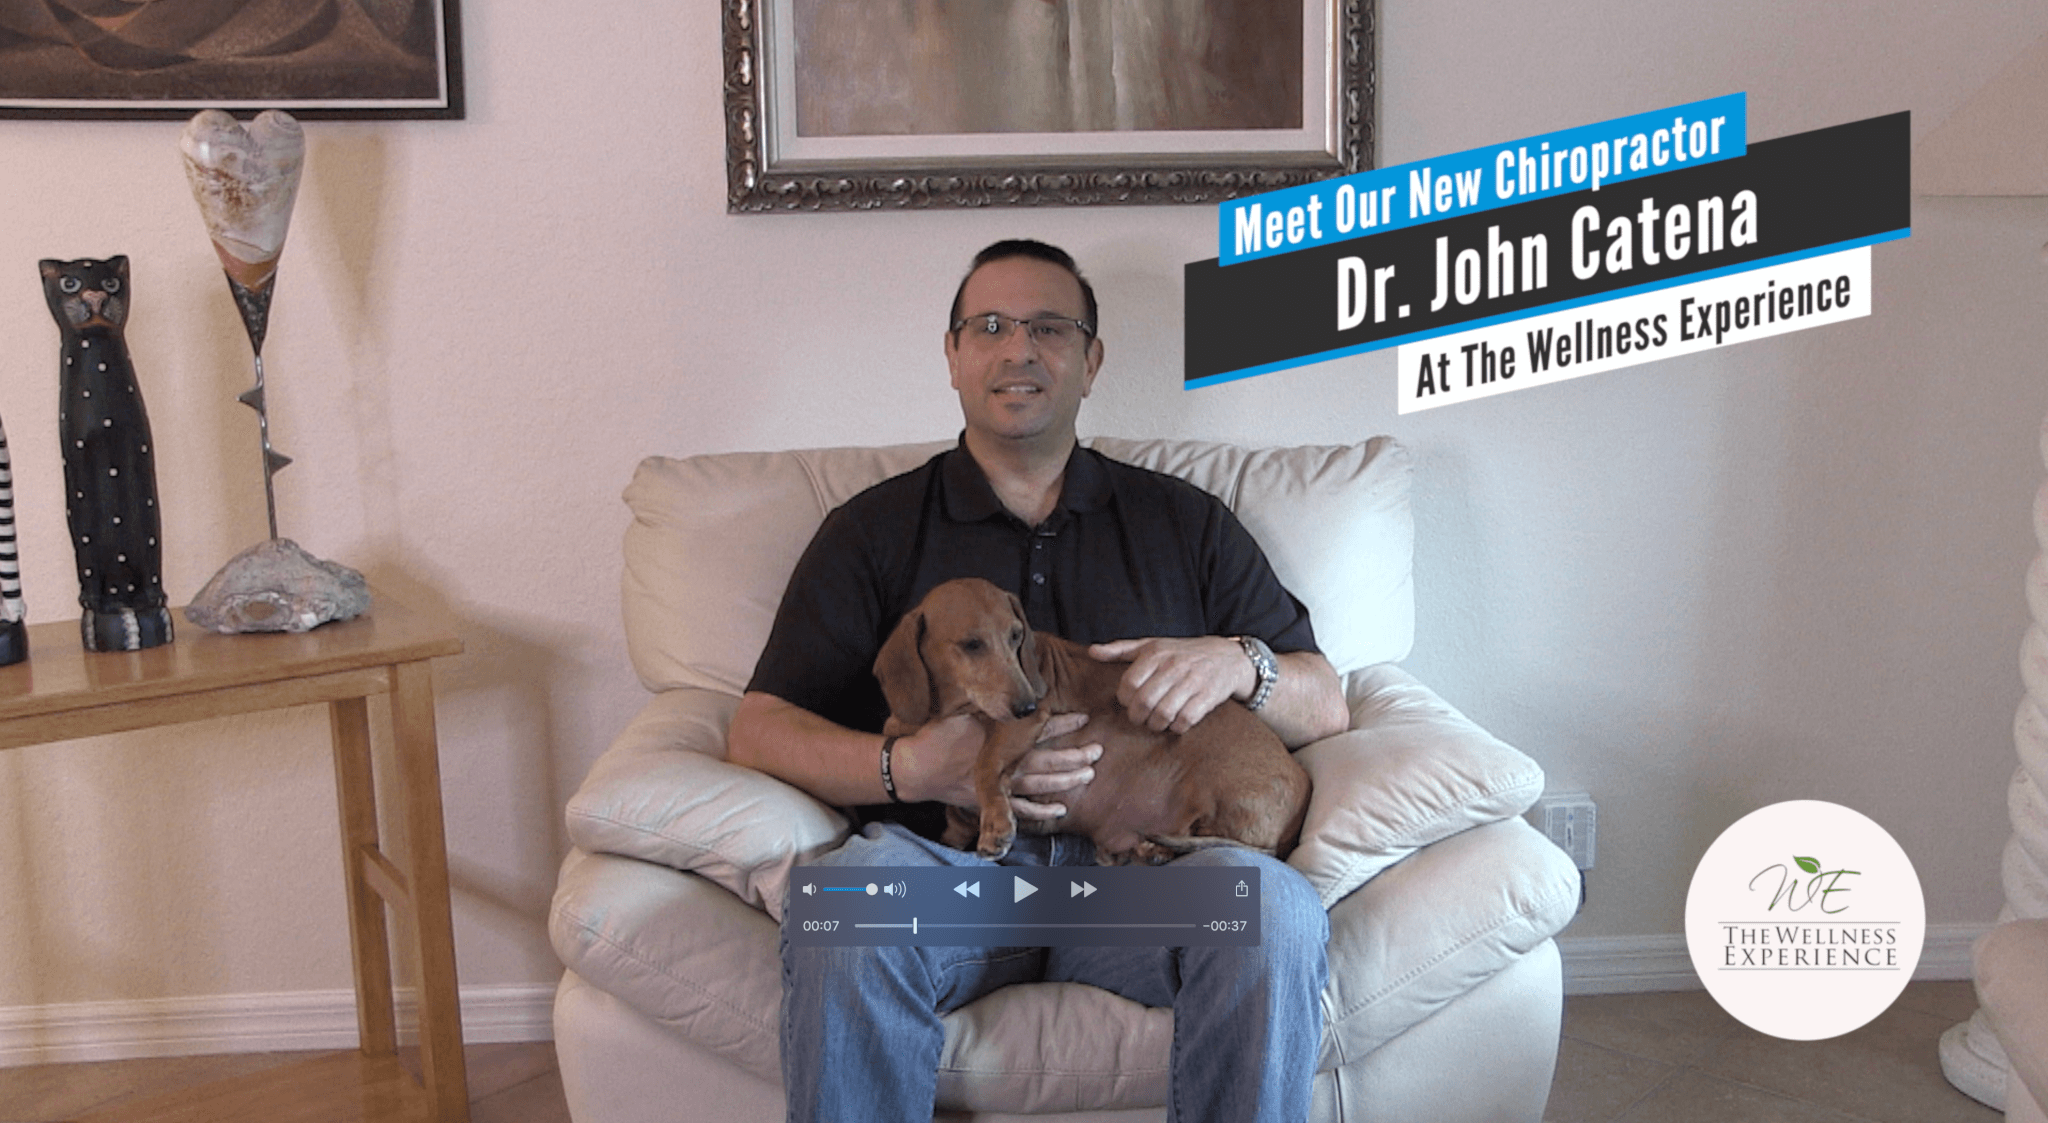 Introducing Dr. John Catena